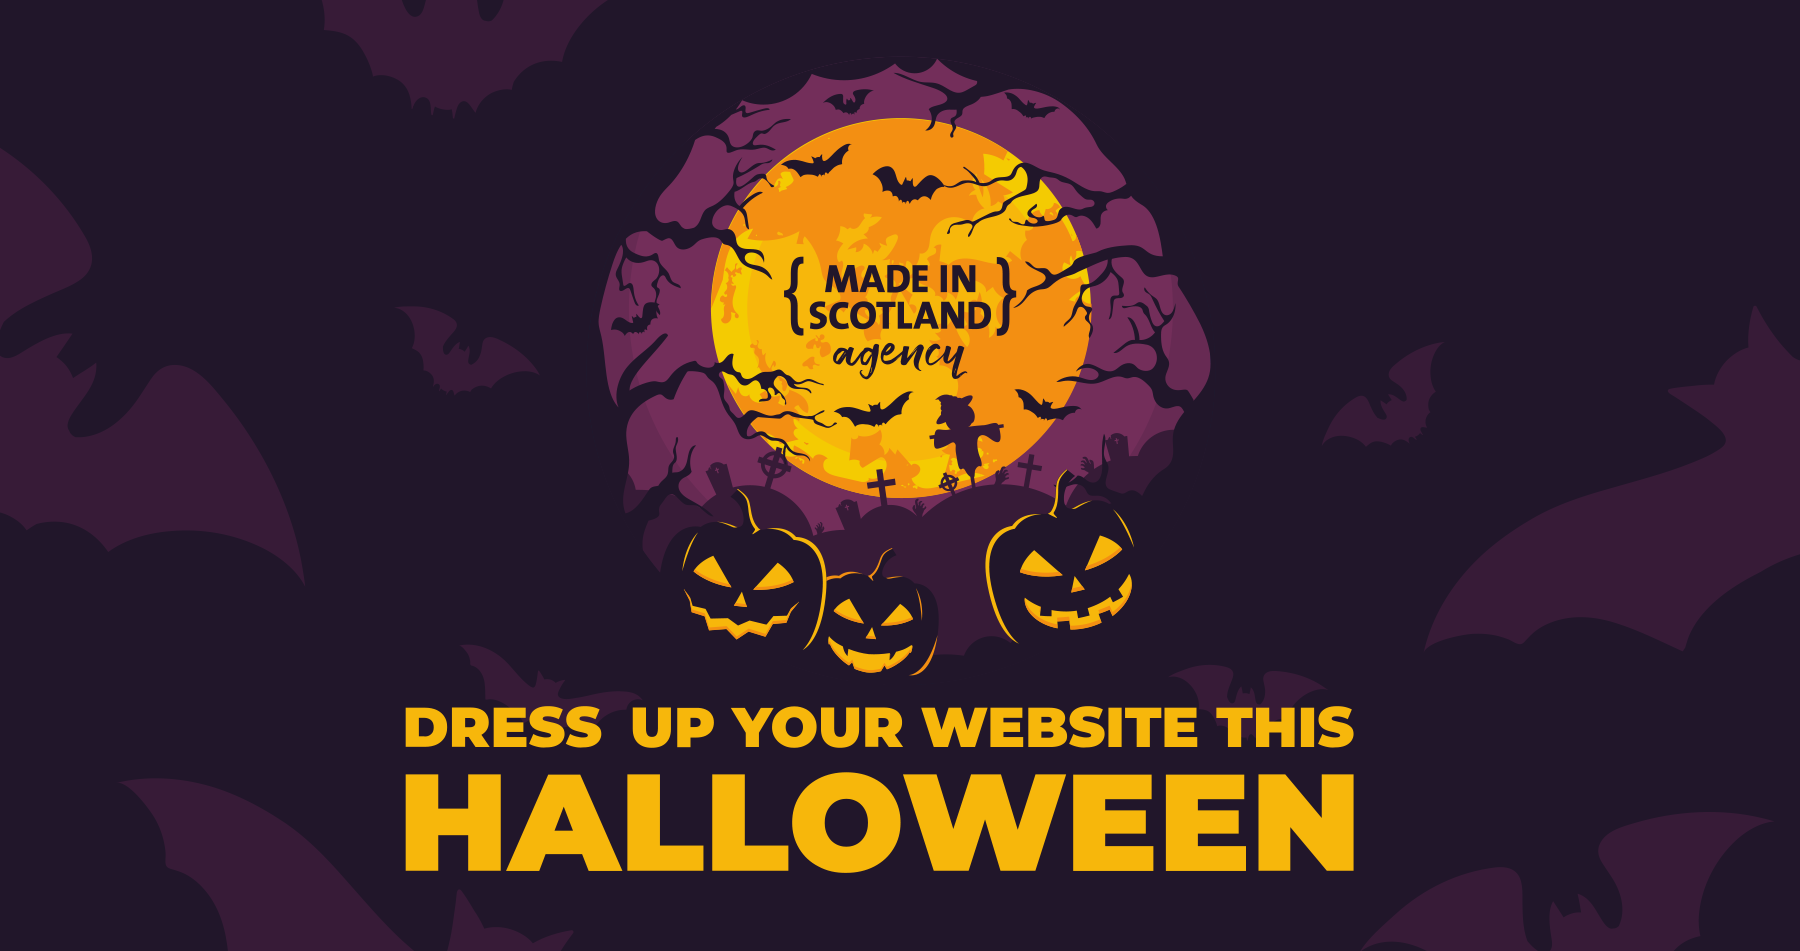 Dress up your website this Halloween